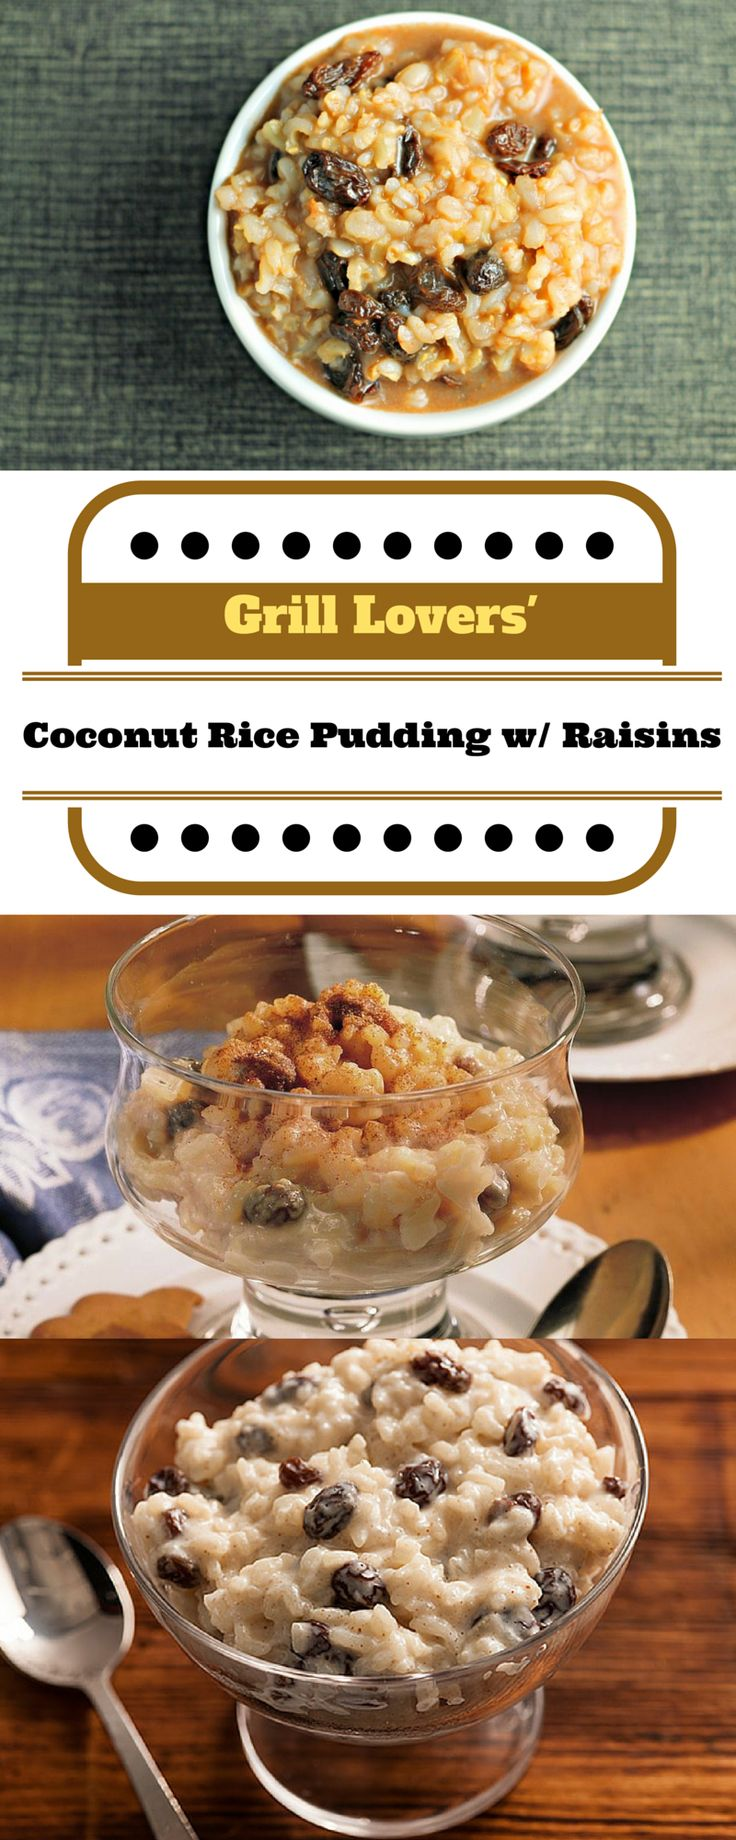 Grill Lovers' Amazing Coconut Rice Pudding with Raisins Recipe  #recipes #foodporn #foodie